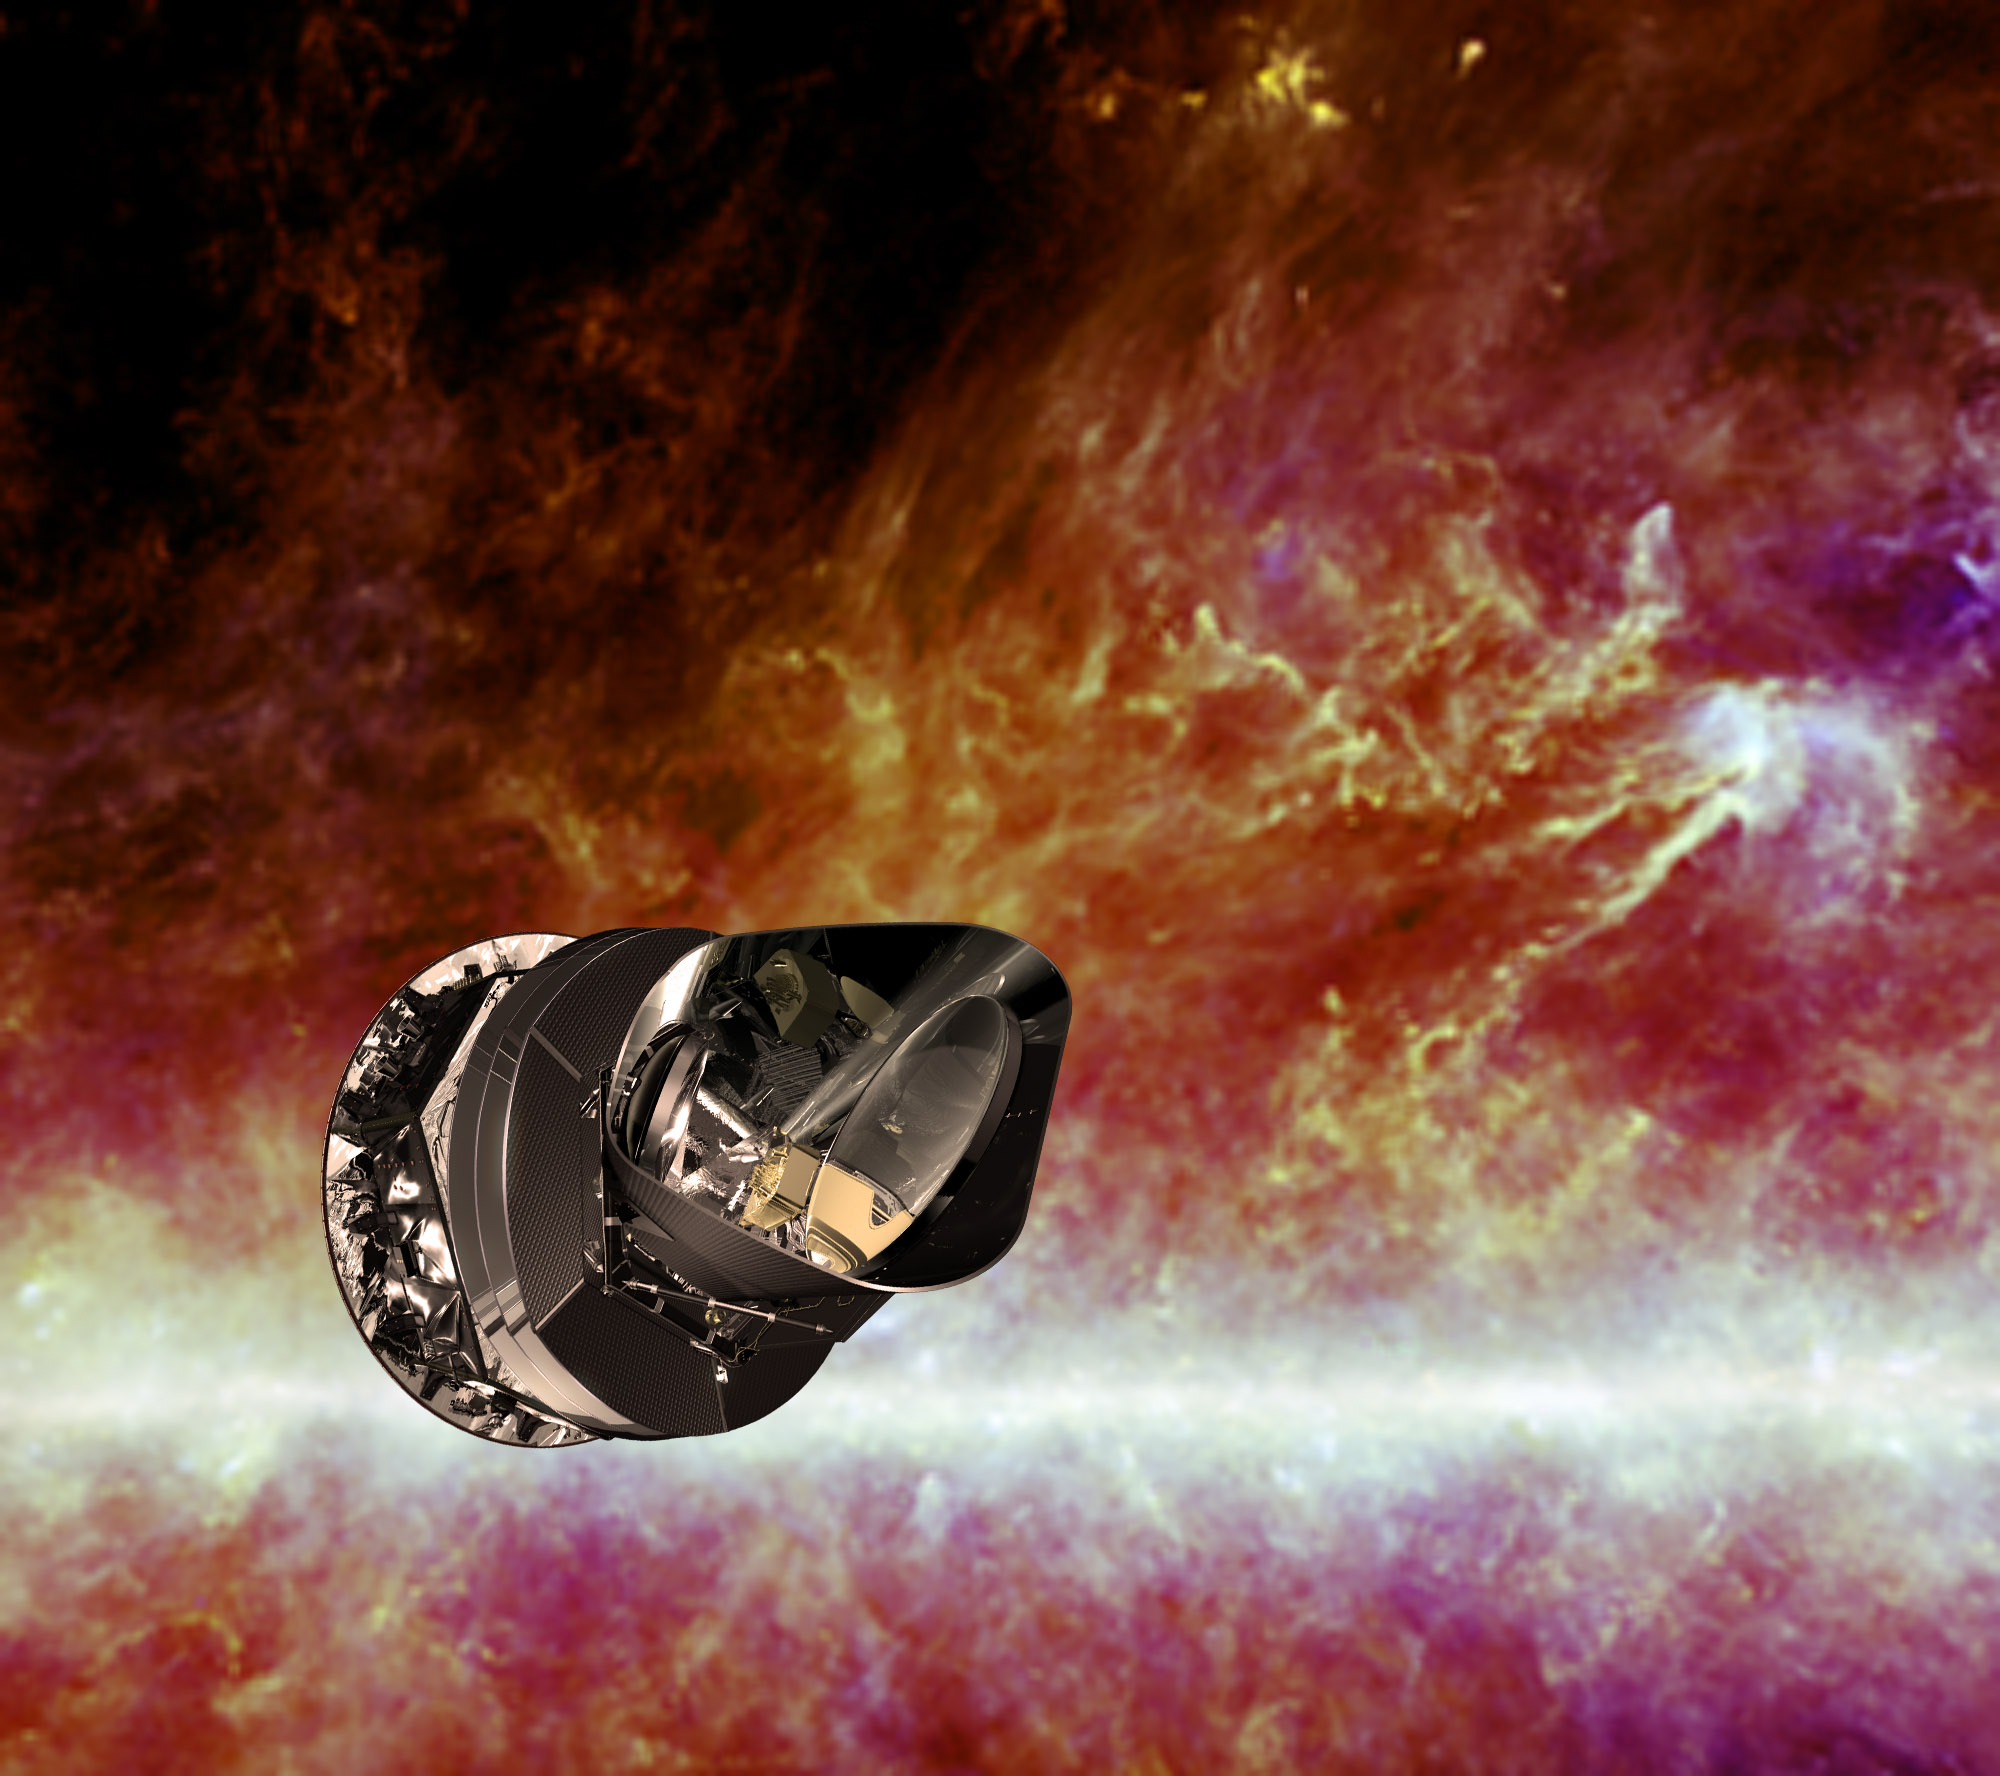 European Probe Finishes Mapping Big Bang's Echo